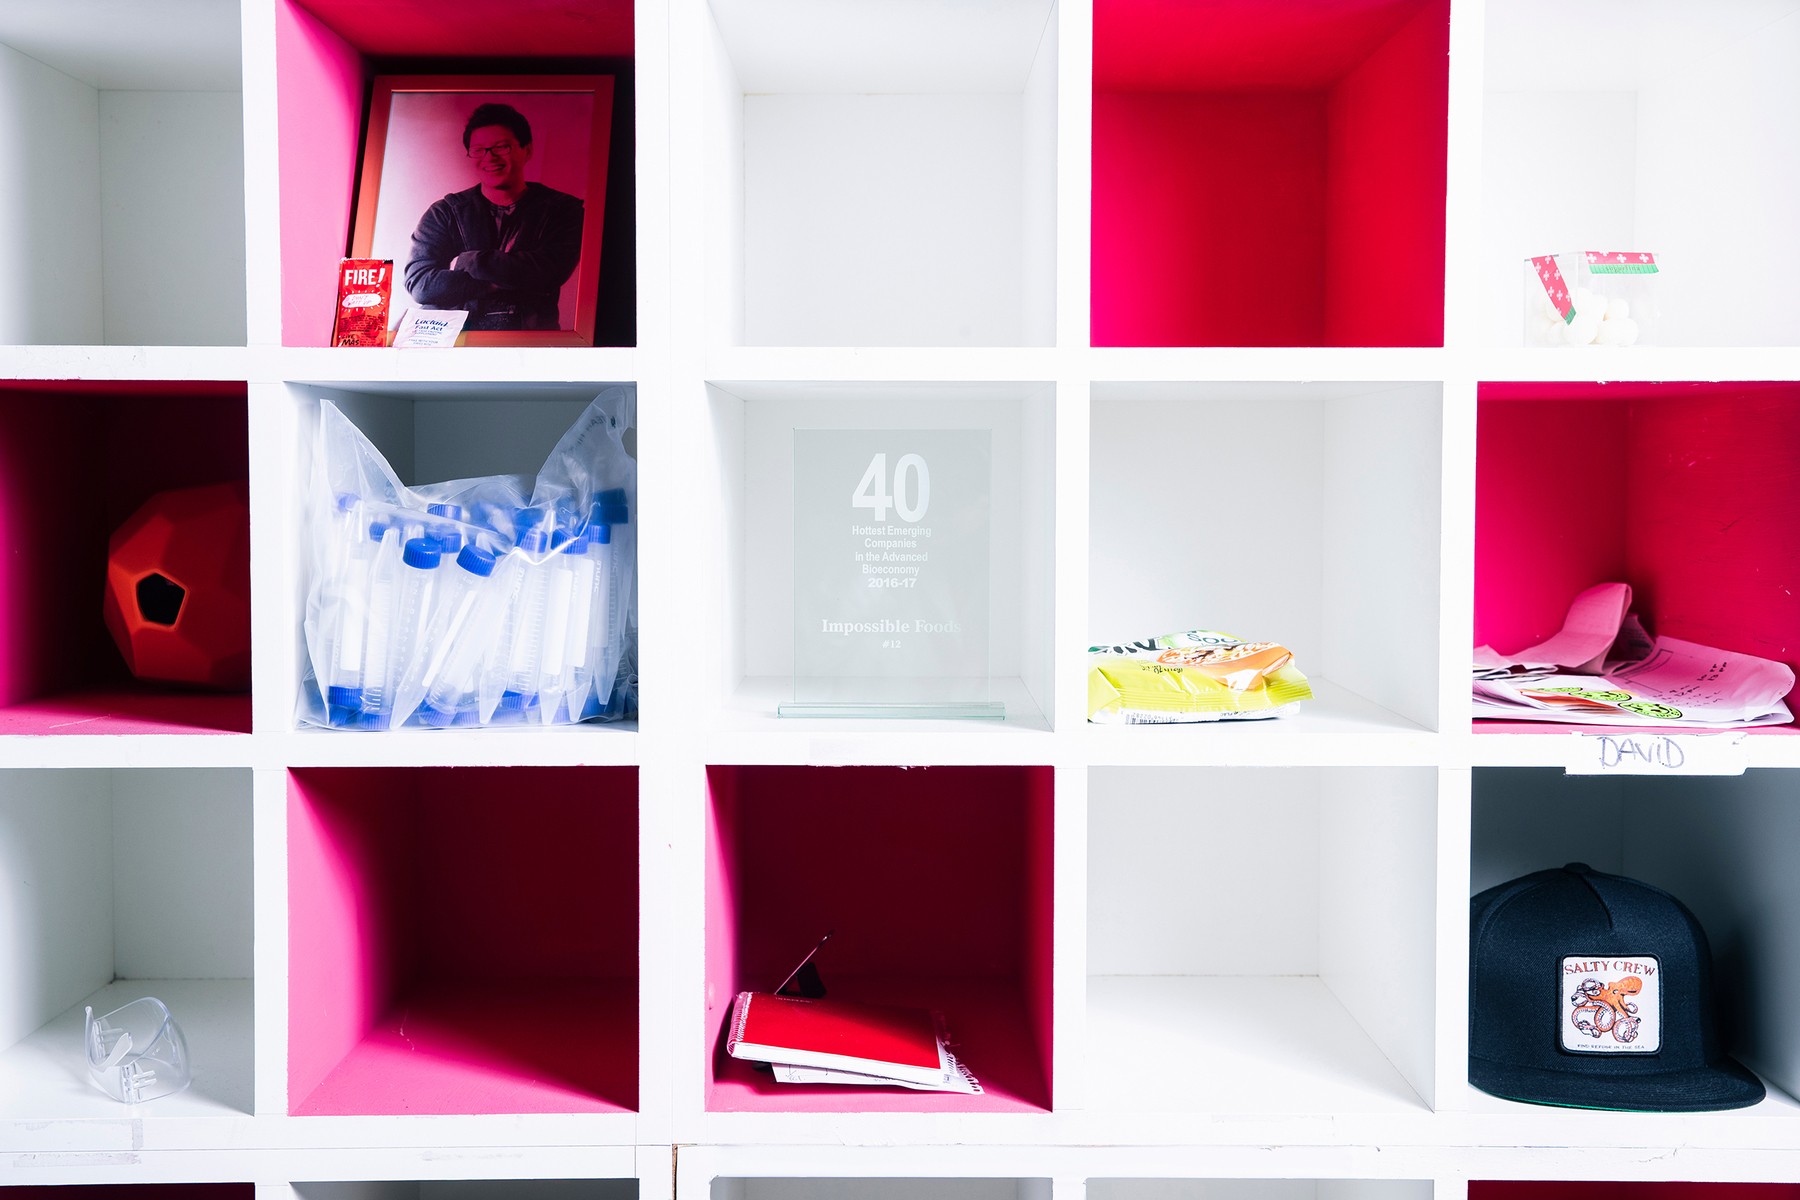 Personal items are seen in a cubby unit at the R&D lab inside Impossible Foods headquarters in Redwood City, Calif. on Thursday, June 20, 2019.